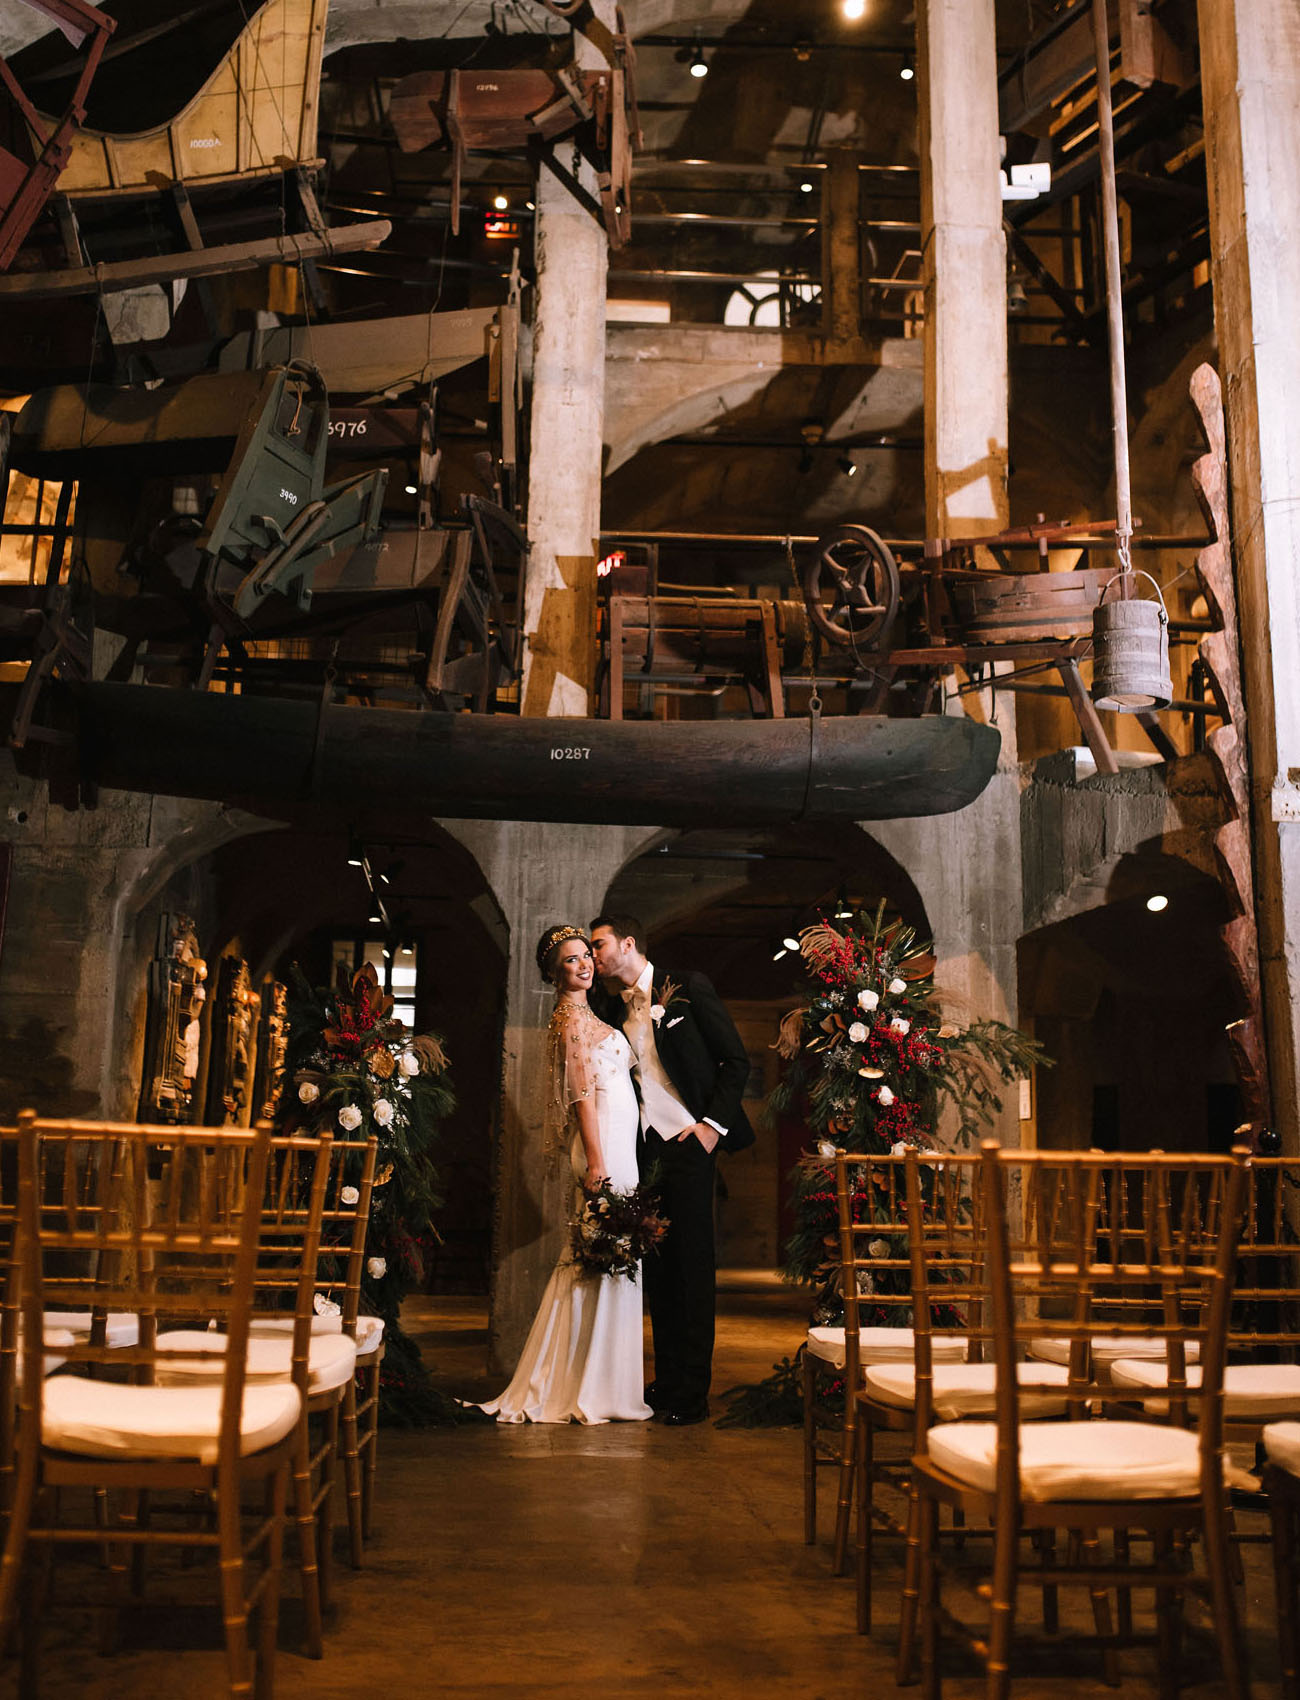 The wedding ceremony took place in the museum hall, with lush florals and evergreens